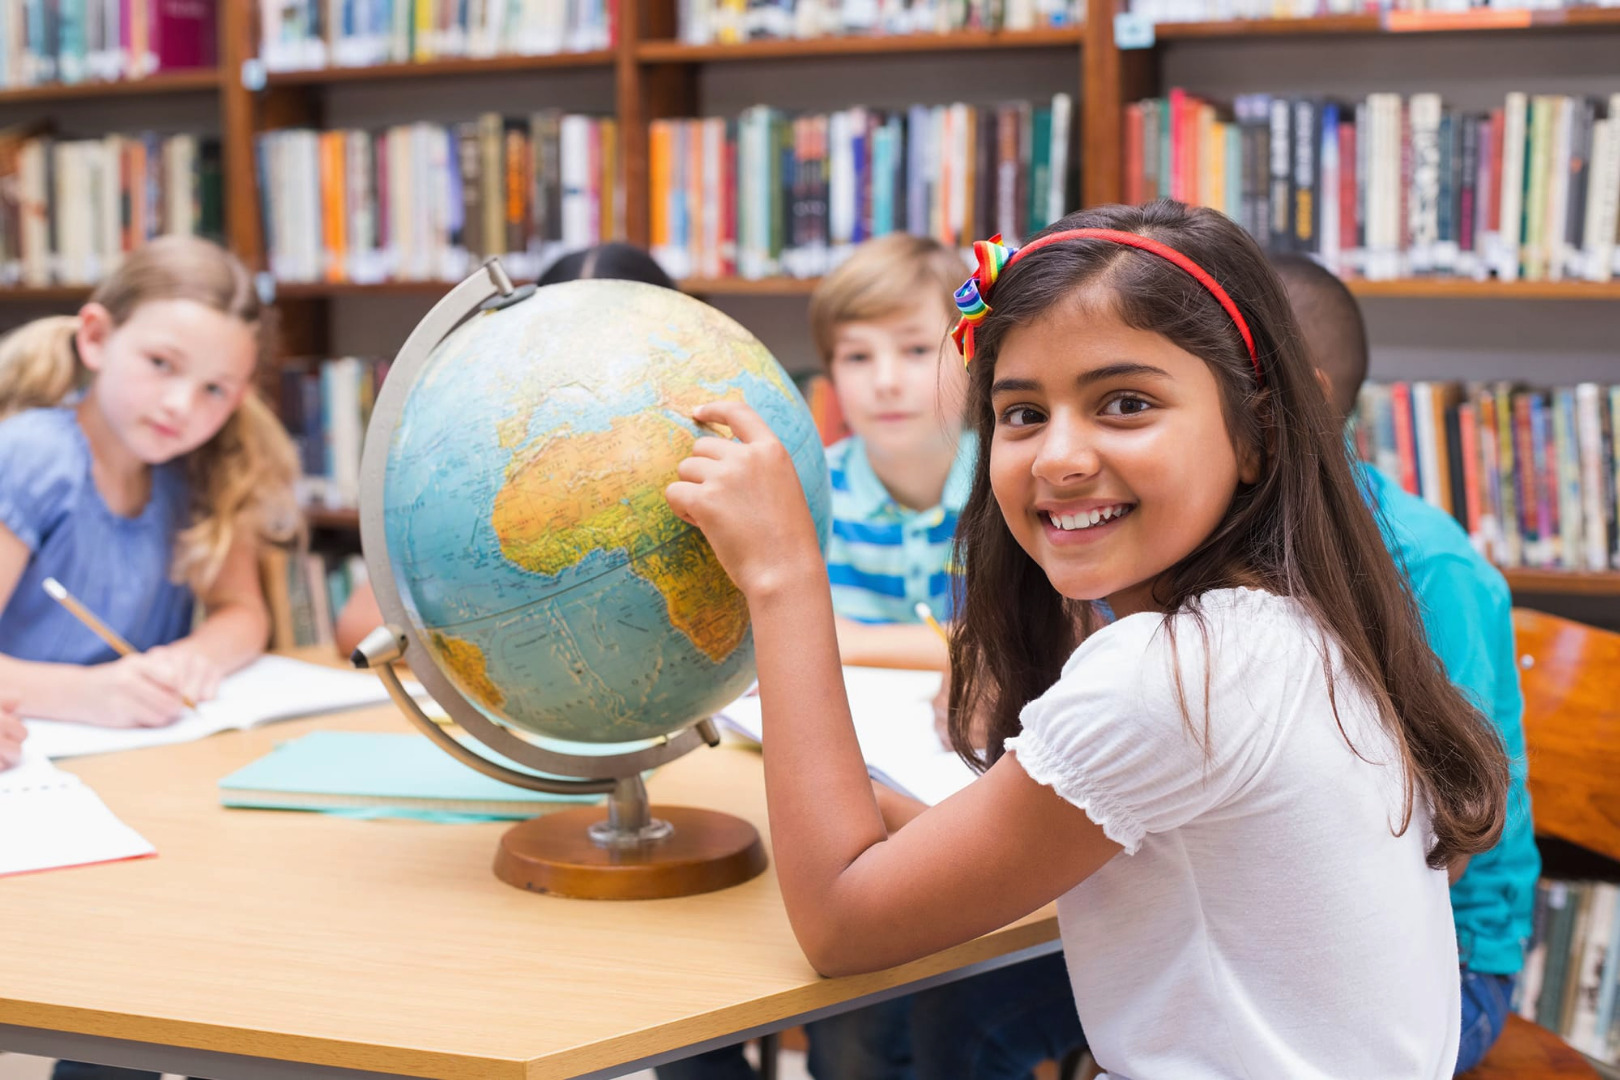 Group of Children with World Globe